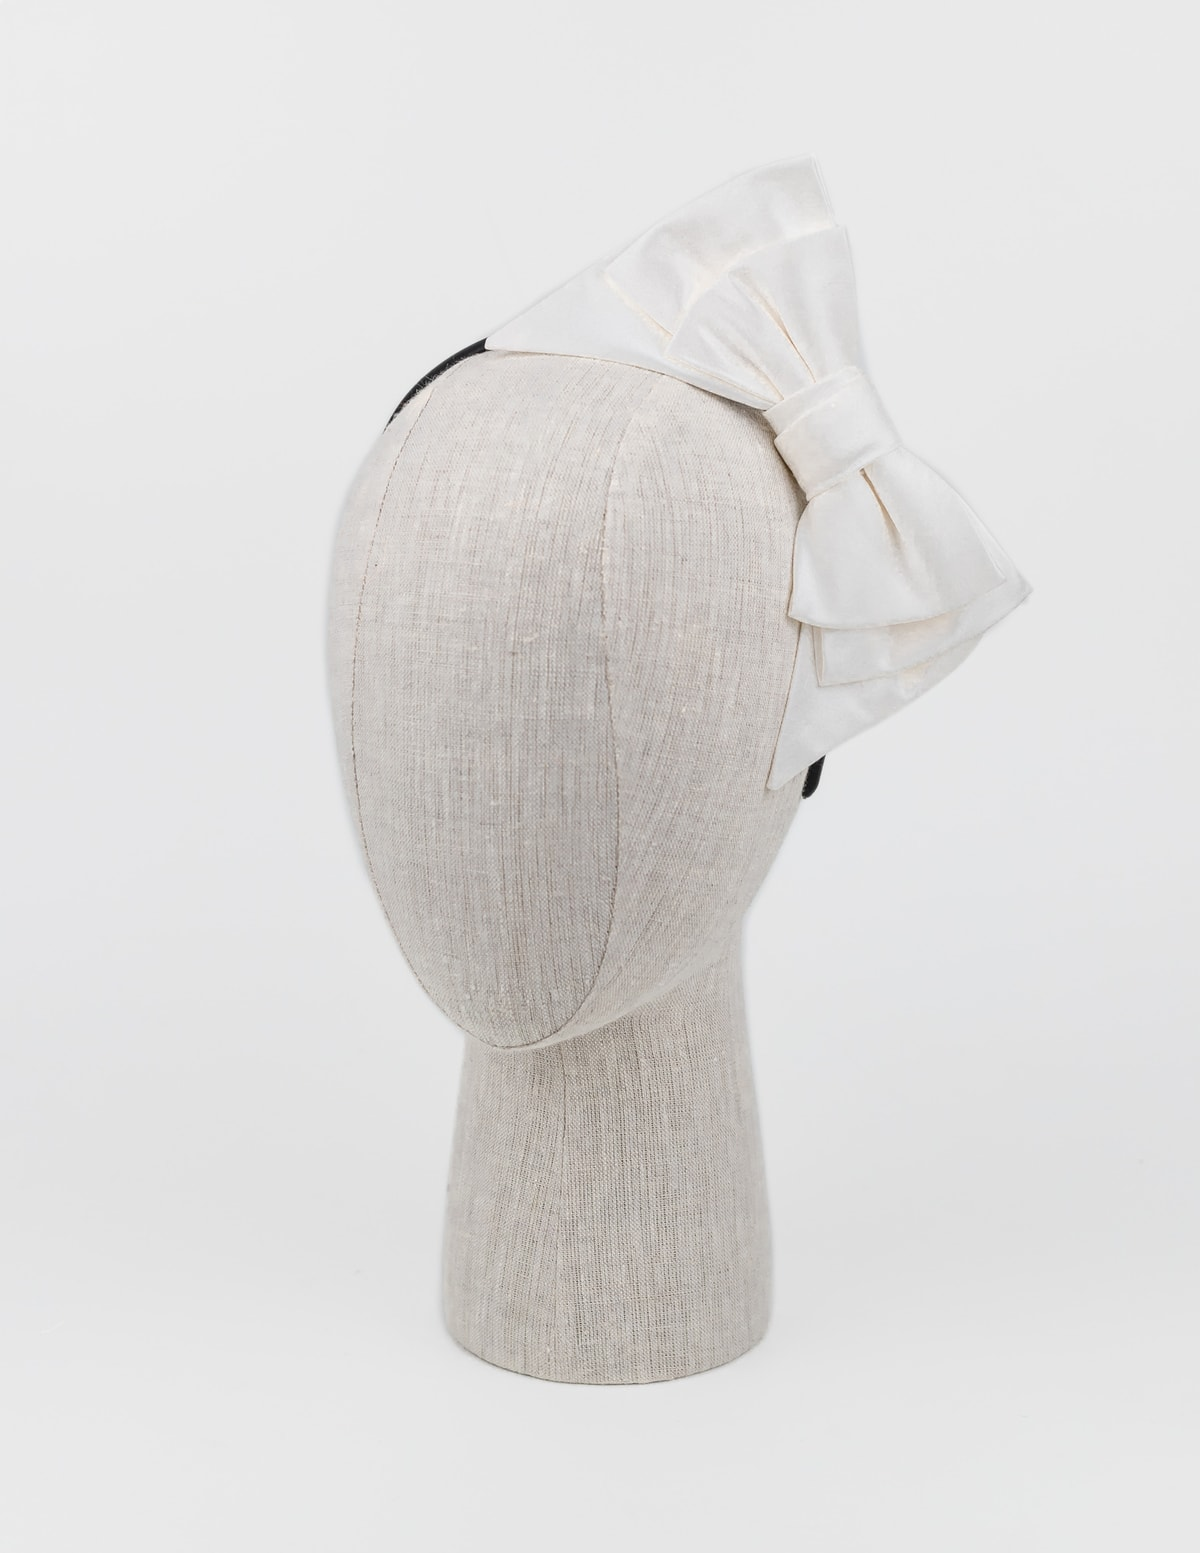 Ivory silk bow headpiece